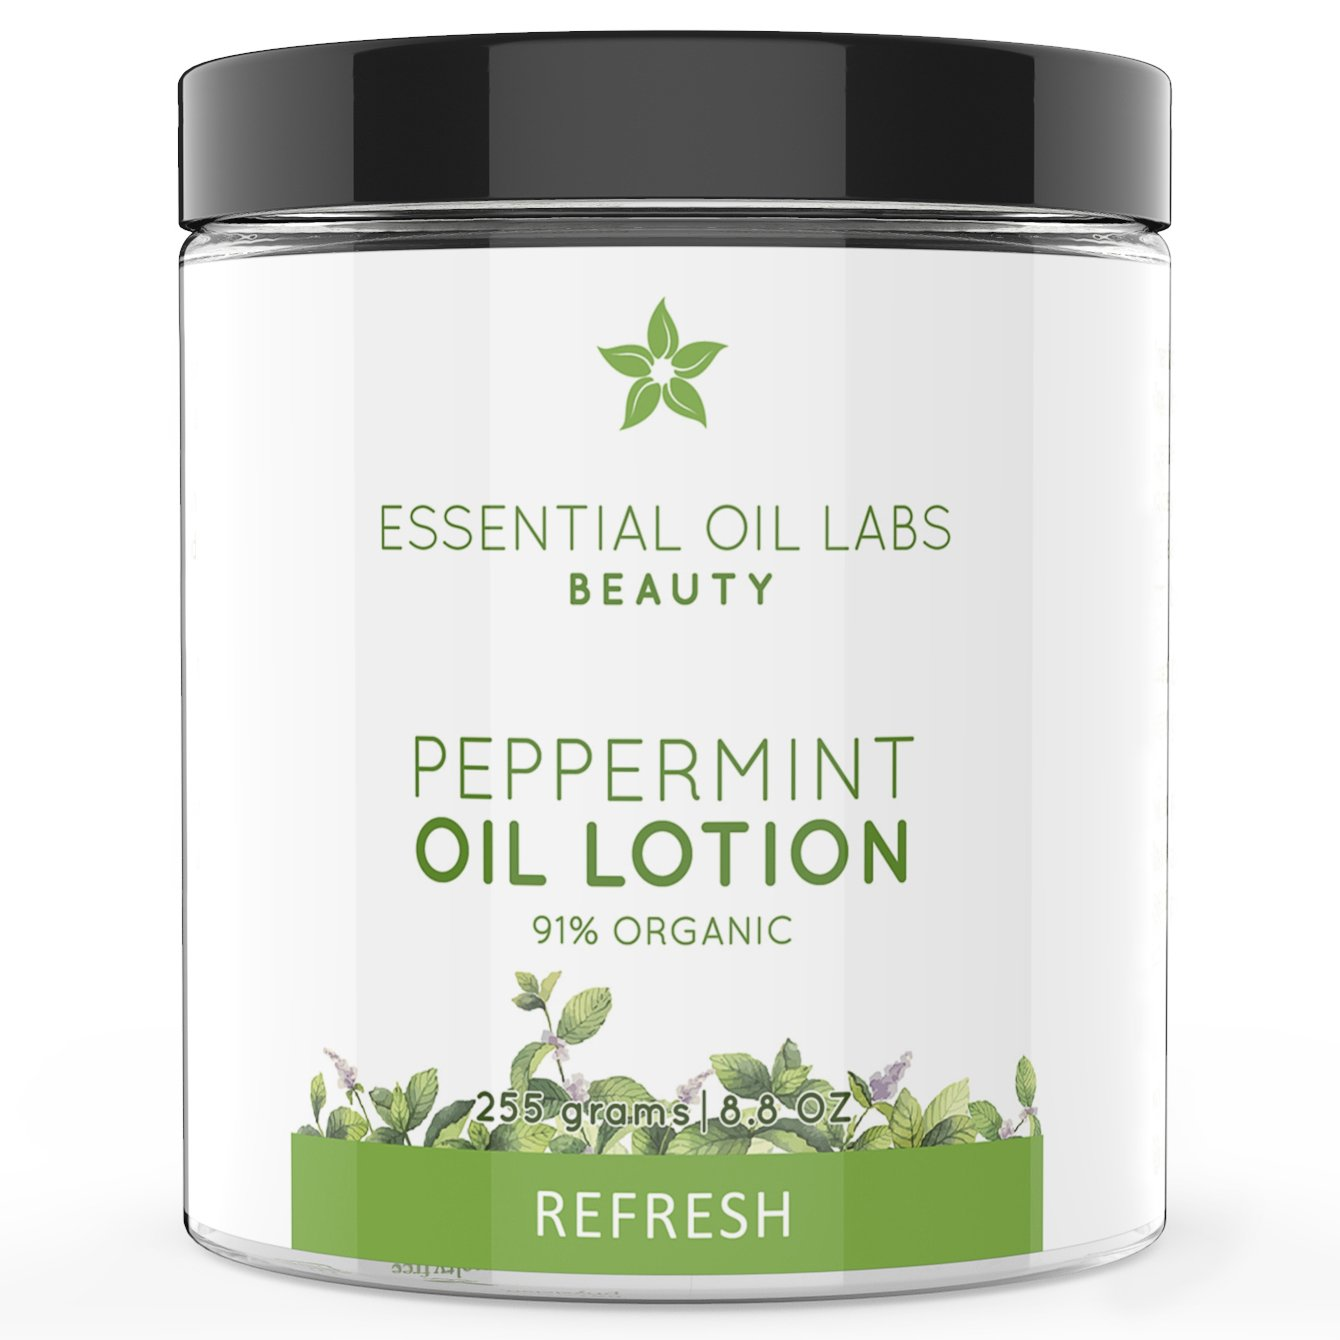 Essential Oil Labs Beauty 'Refresh' Peppermint Oil Lotion 8.8 oz, 91% Organic Ingredients, Refreshing Lotion Infused with Peppermint Essential Oil, Moisturizing Relief by Essential Oil Labs